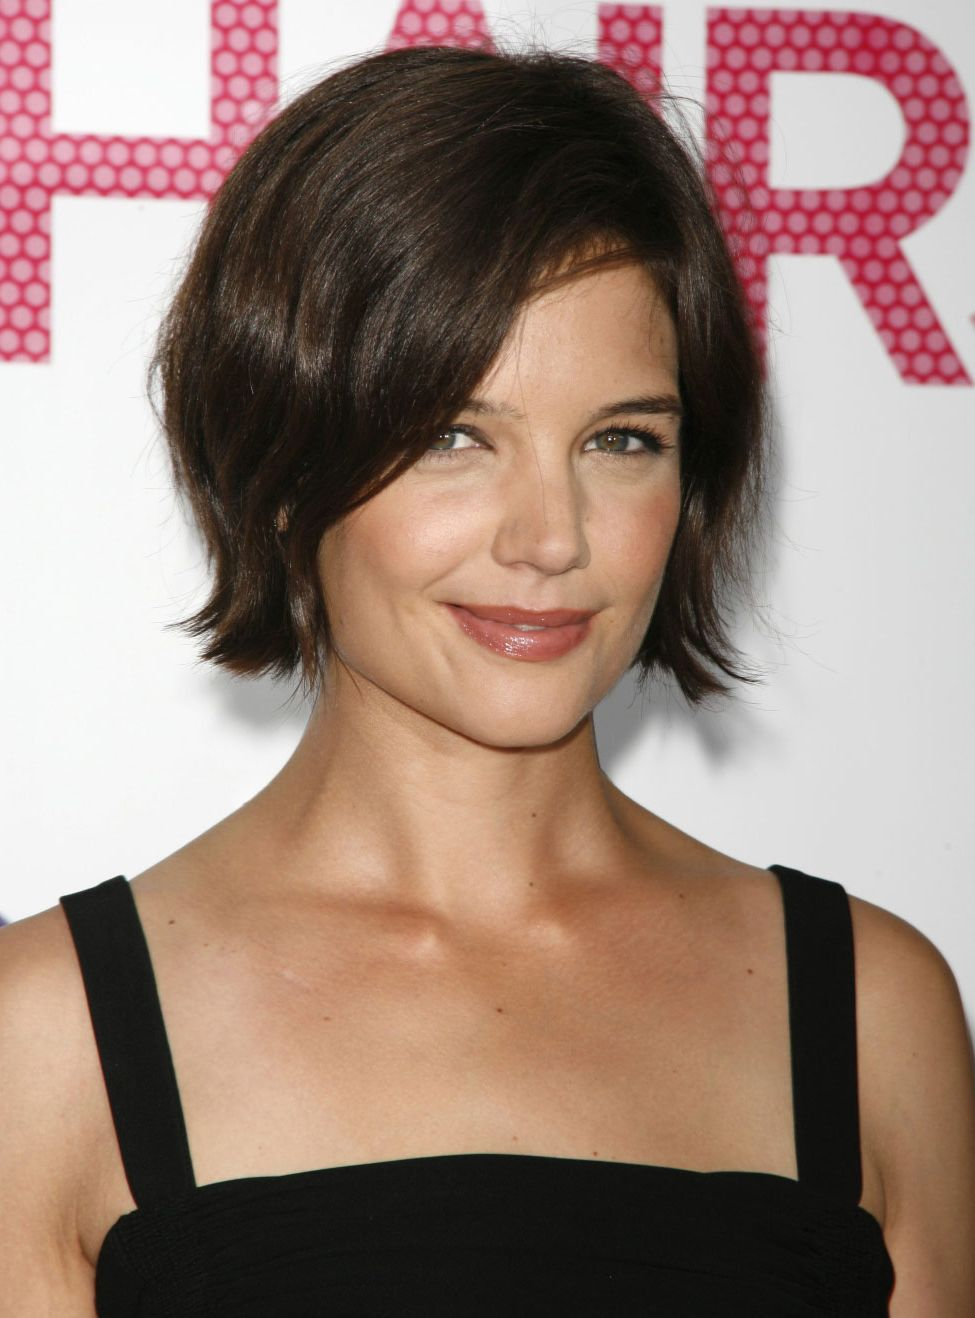 celebrity hairstyle haircut ideas: katie holmes haircut hairstyles